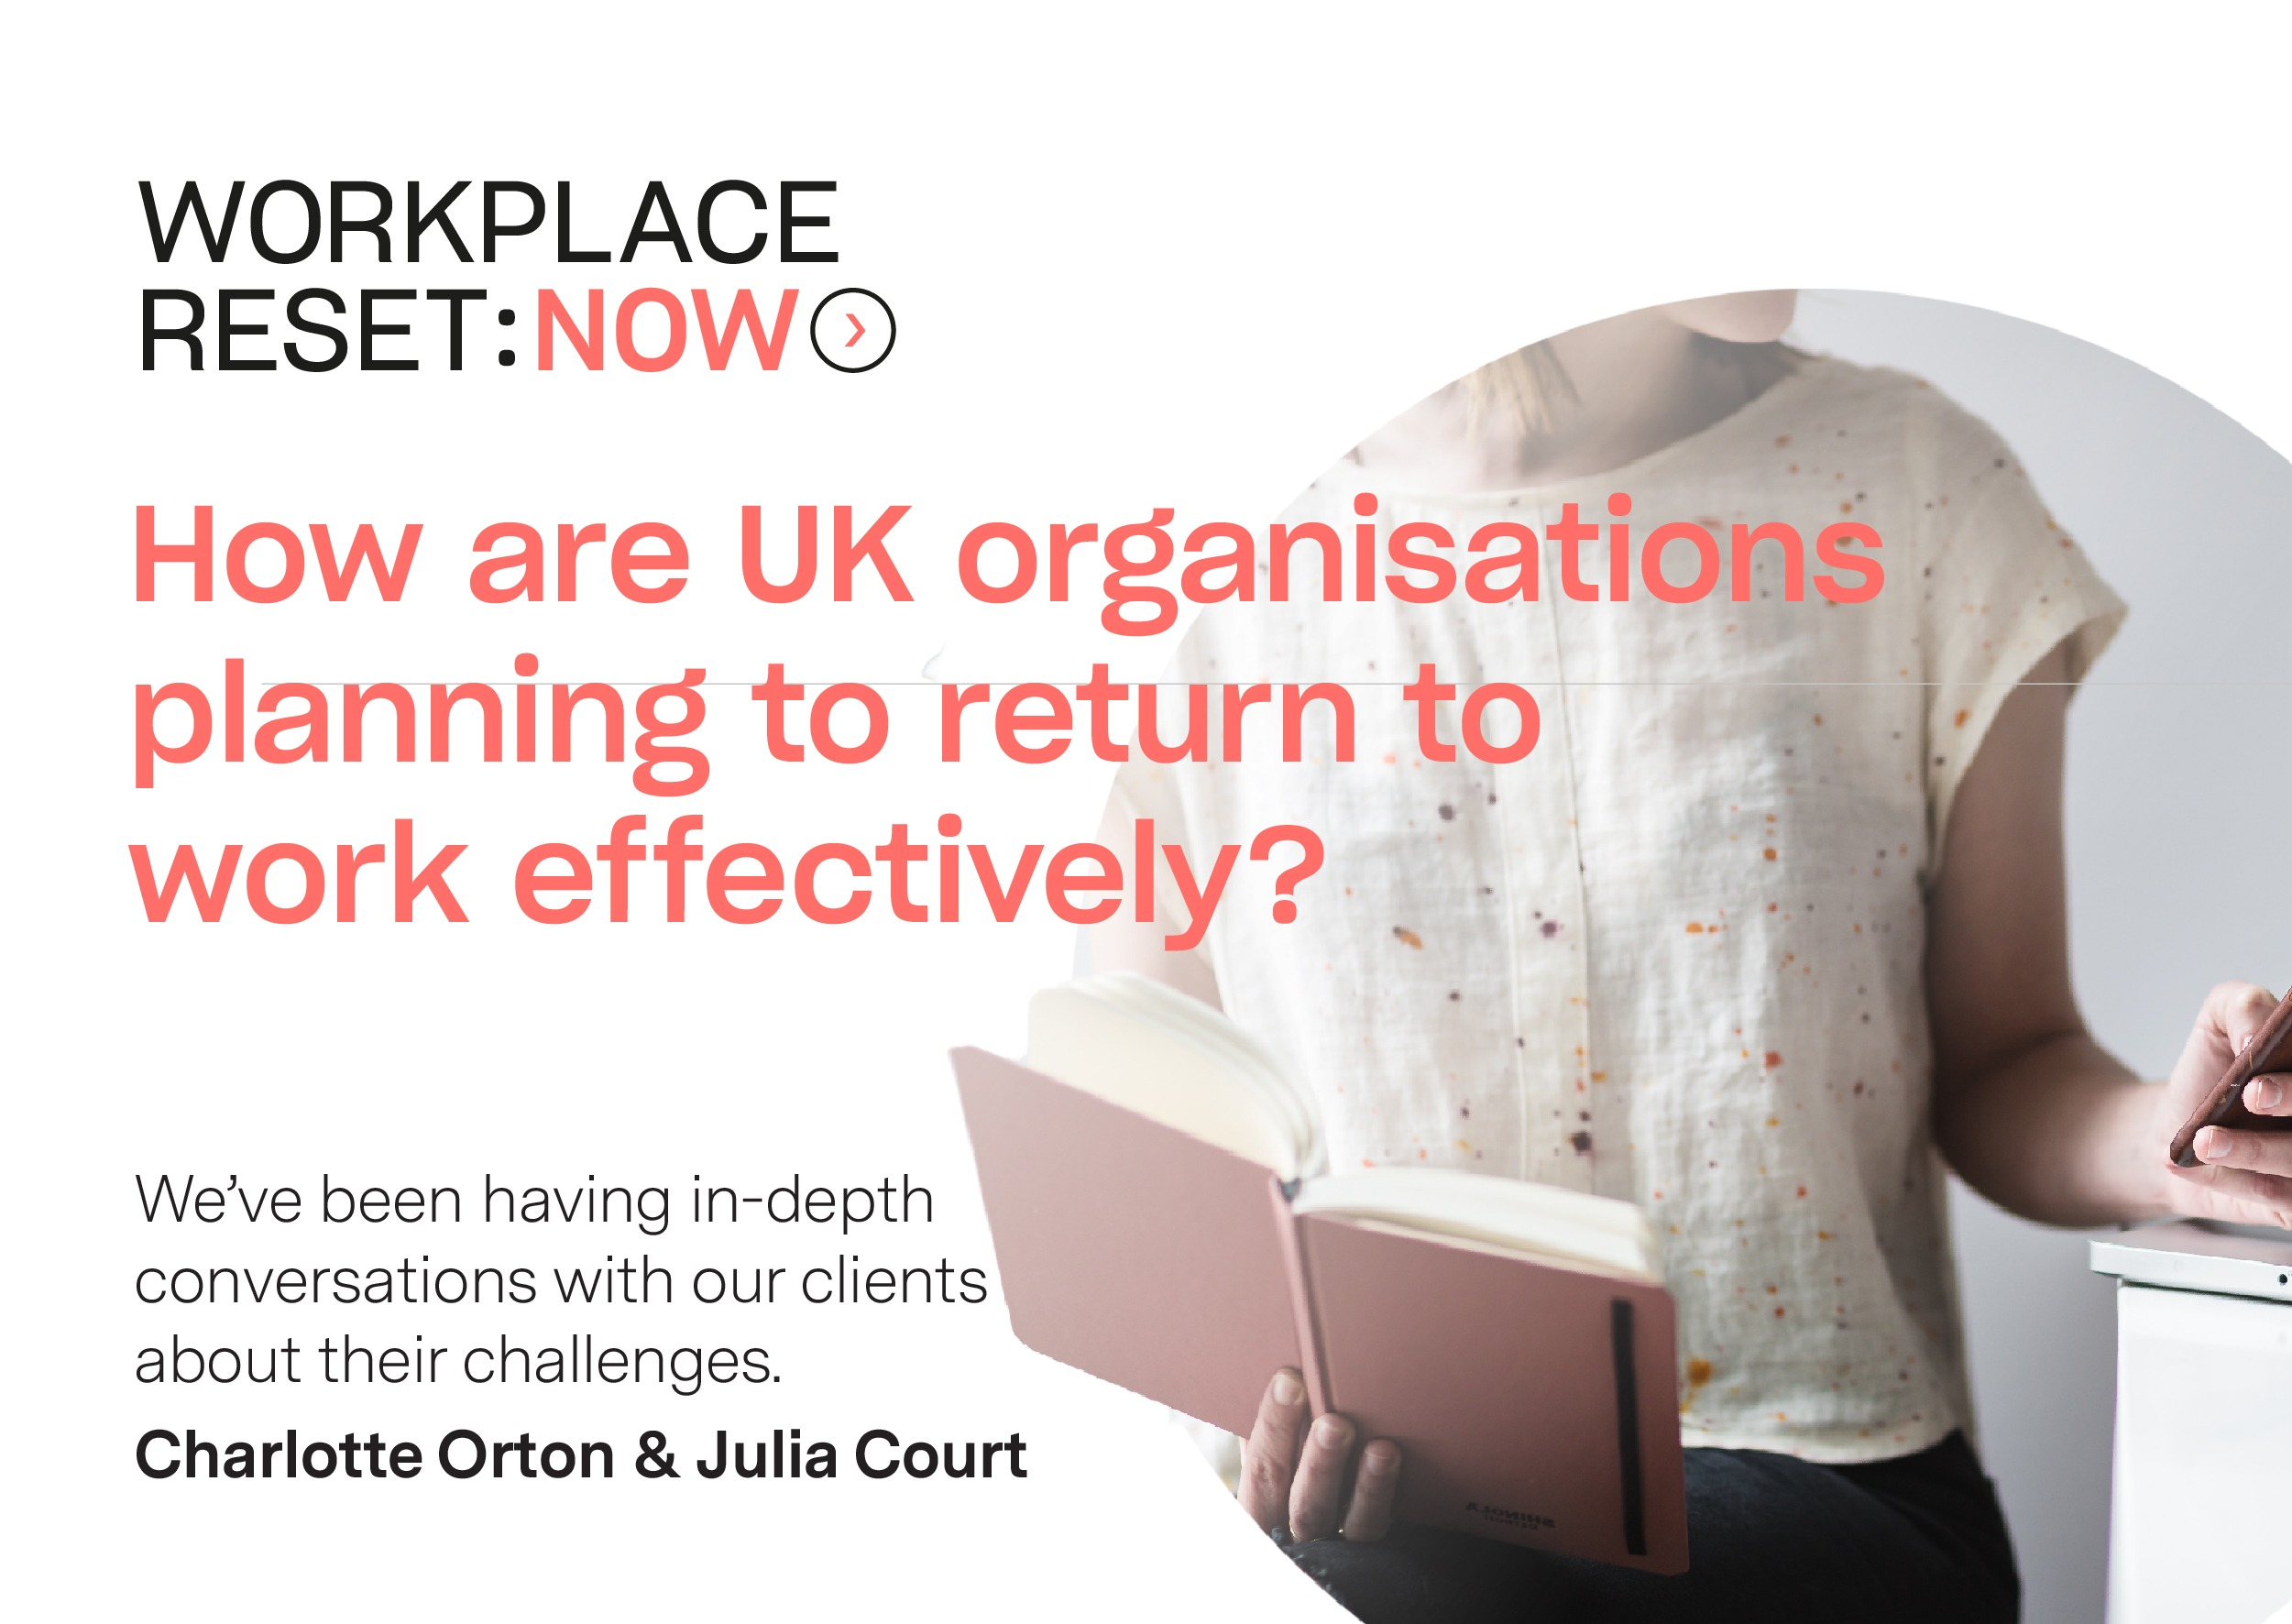 How are UK organisations planning to return to work effectively?